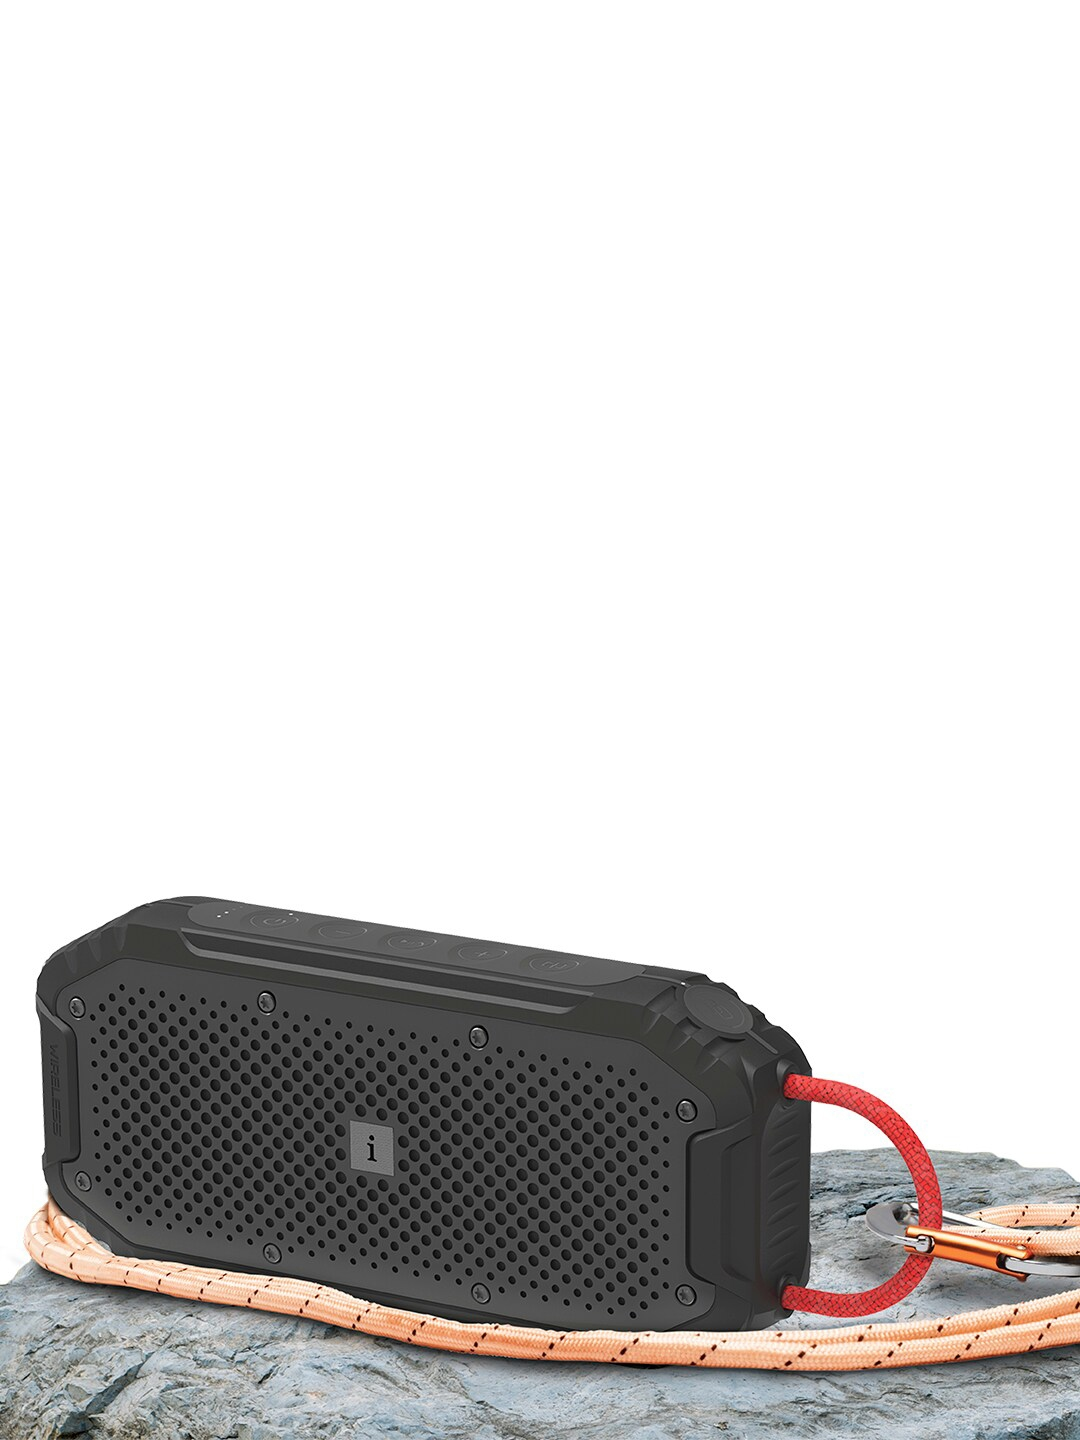 iBall Black Musi Rock Portable Speaker with IPX6 Water Resistant   Built in Power Bank